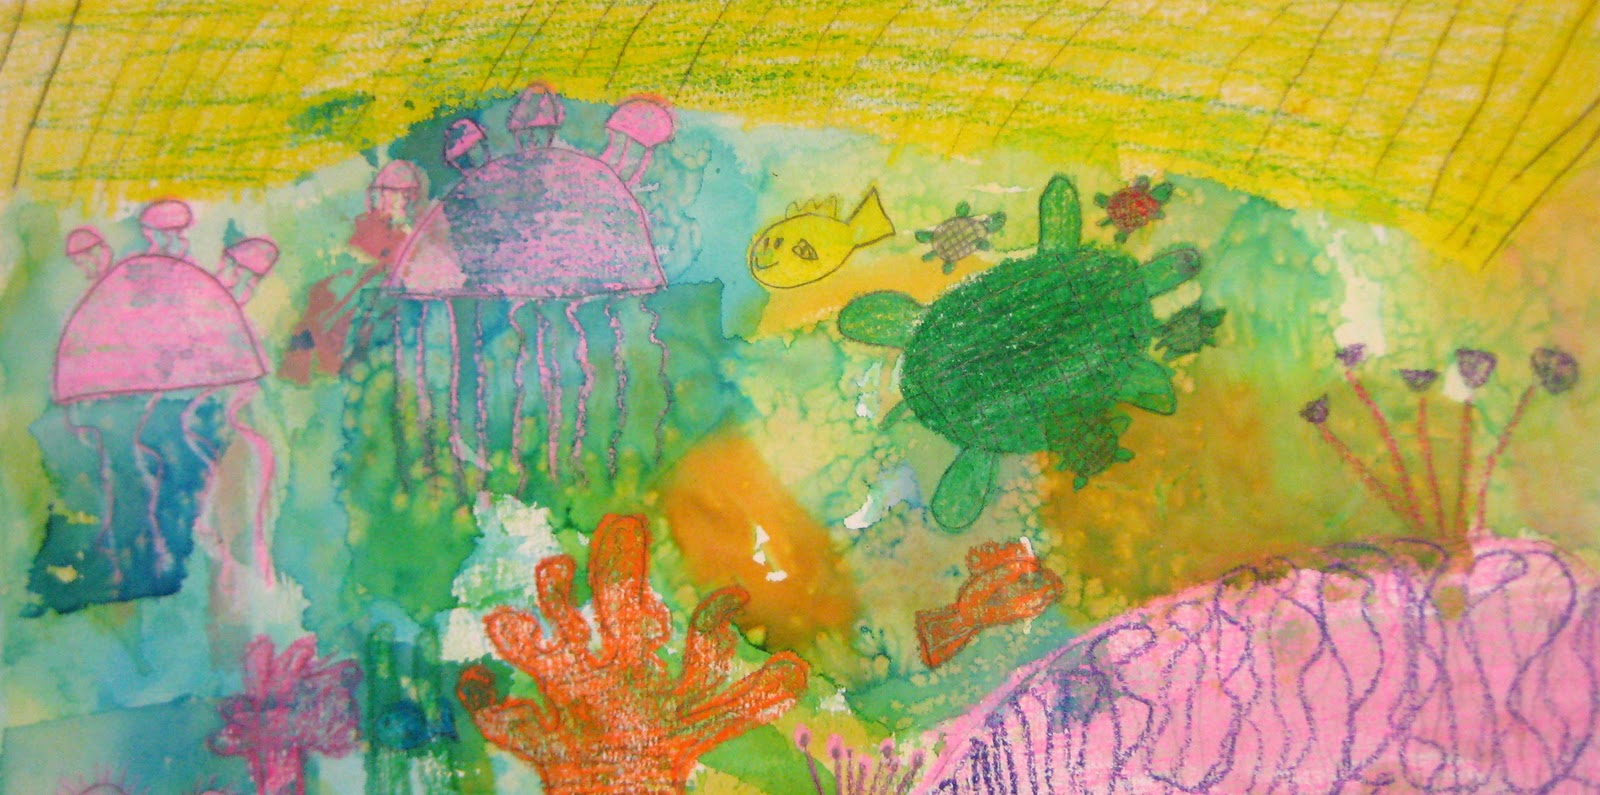 Experiments in Art Education: Watercolor Coral Reefs